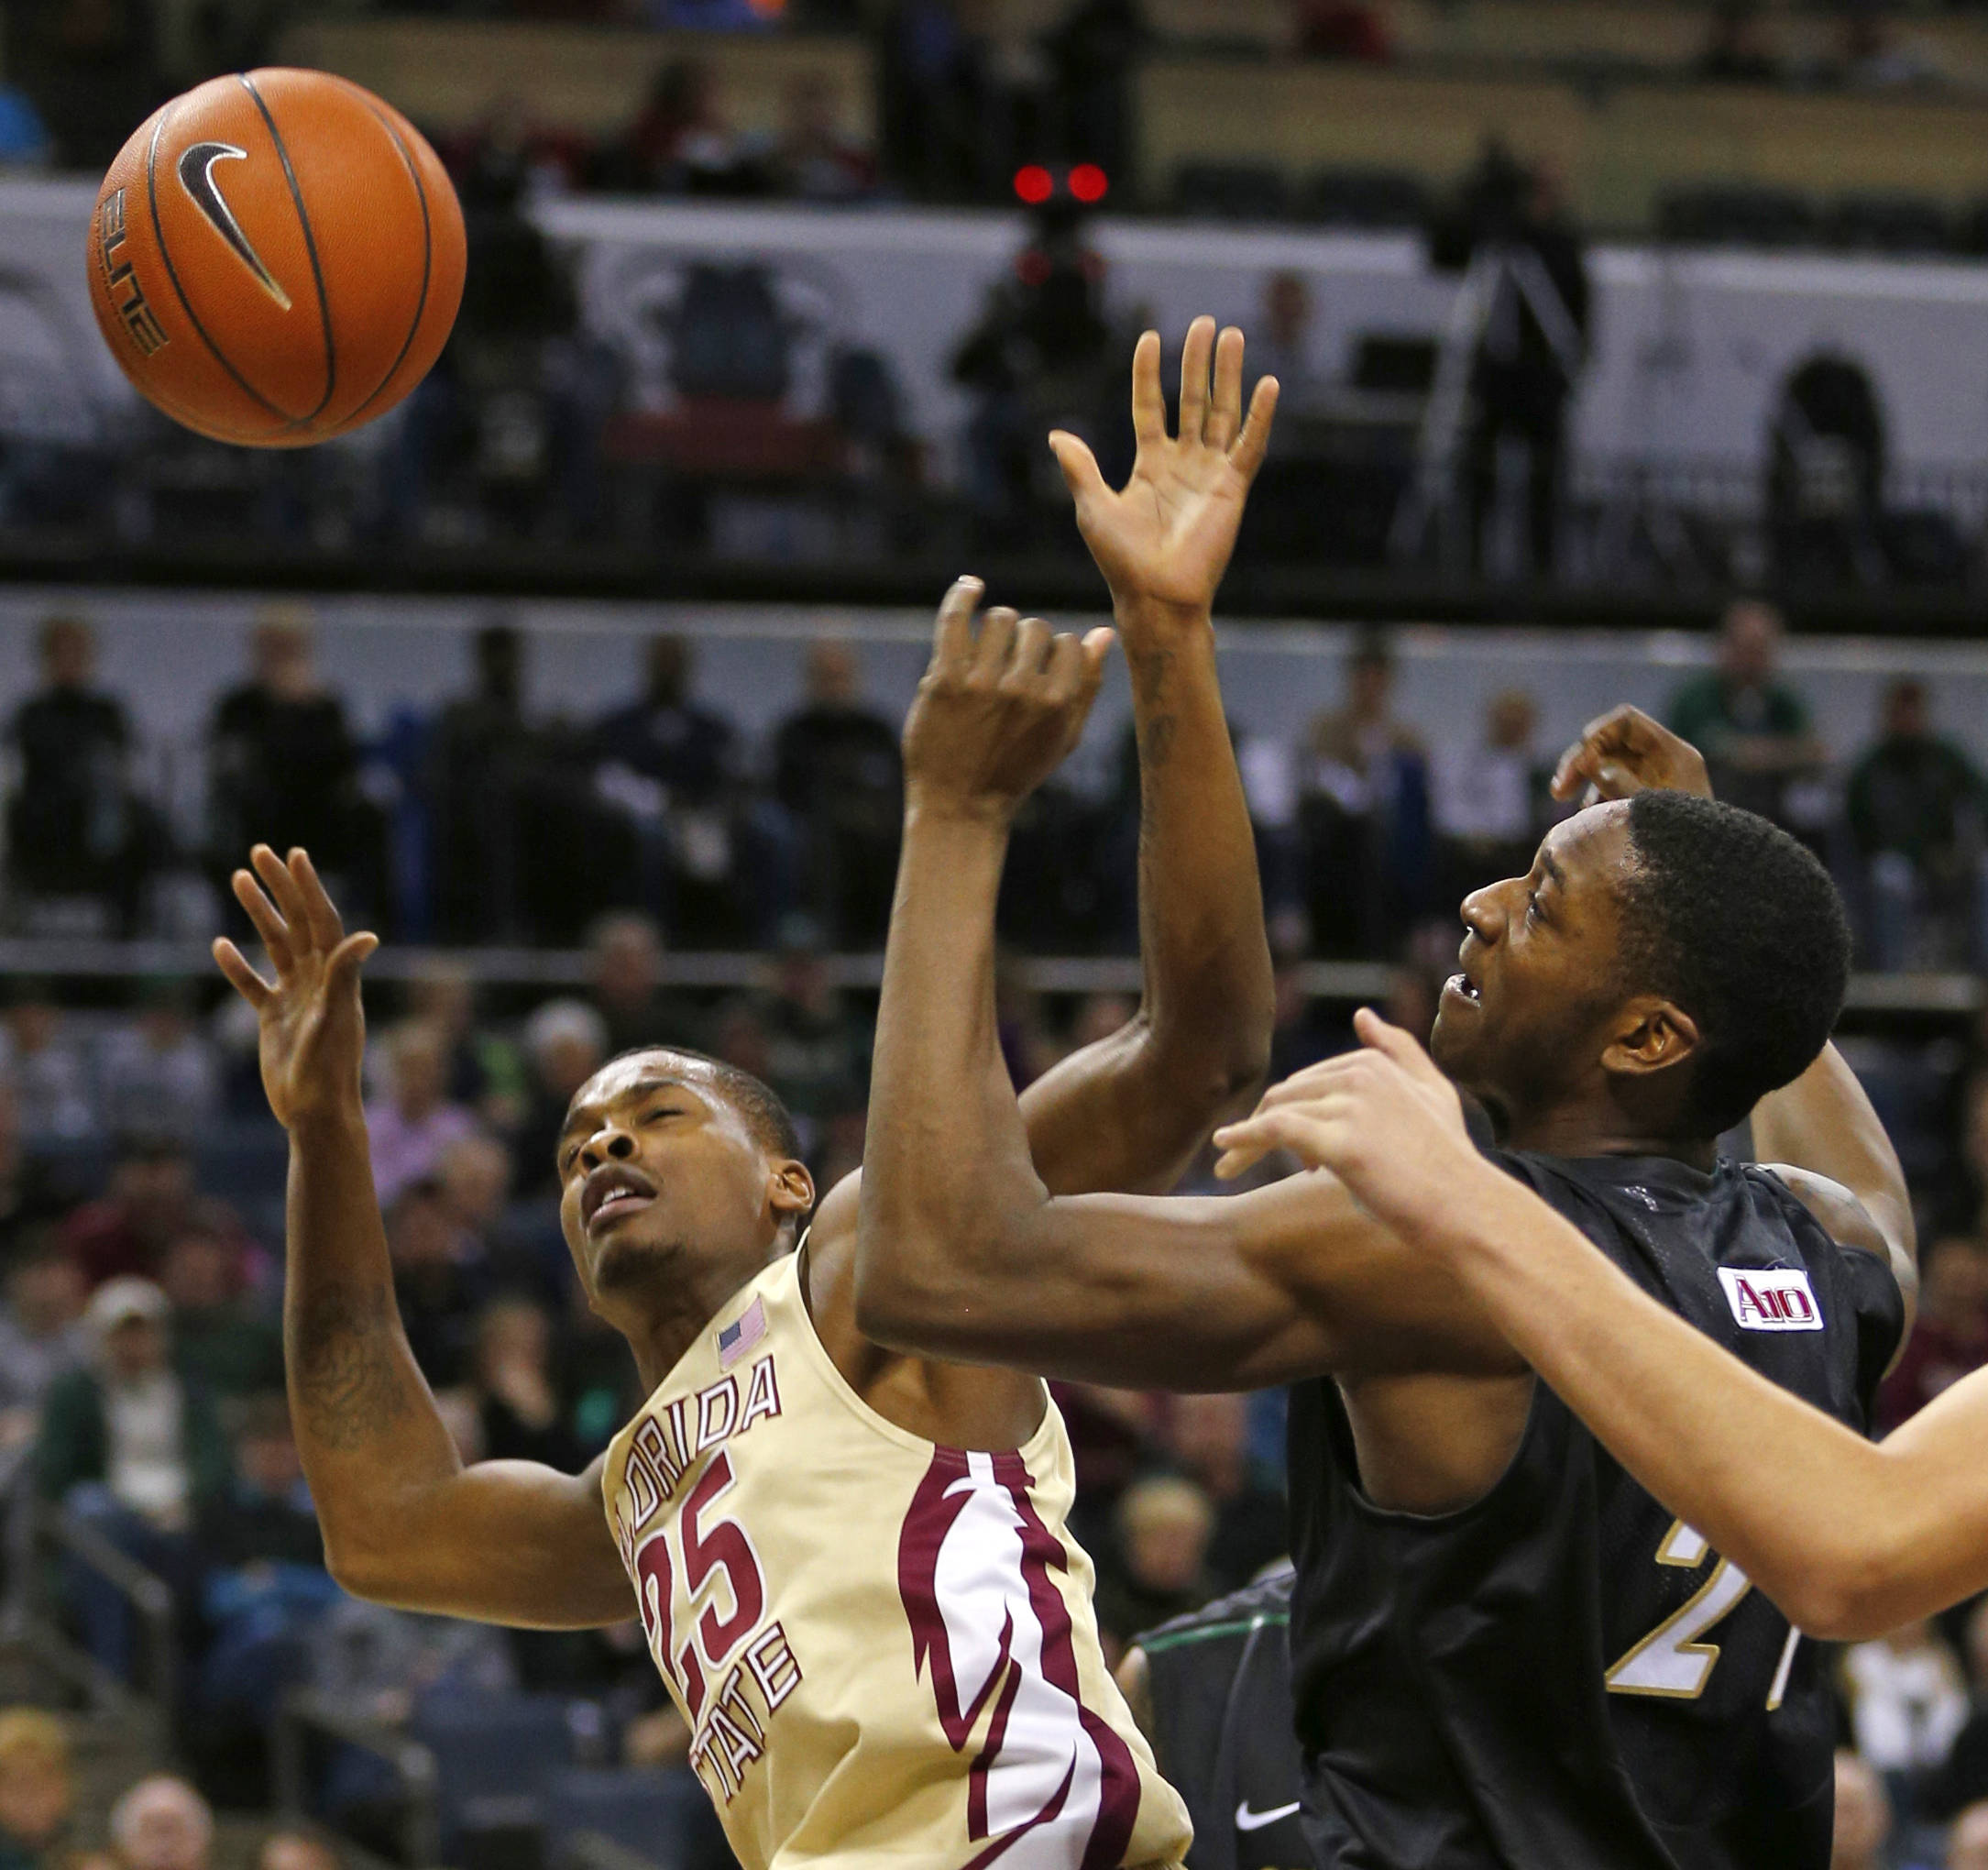 Florida State's Aaron Thomas (25) and Charlotte's Willie Clayton (21) battles for a rebound during the first half. (AP Photo/Chuck Burton)